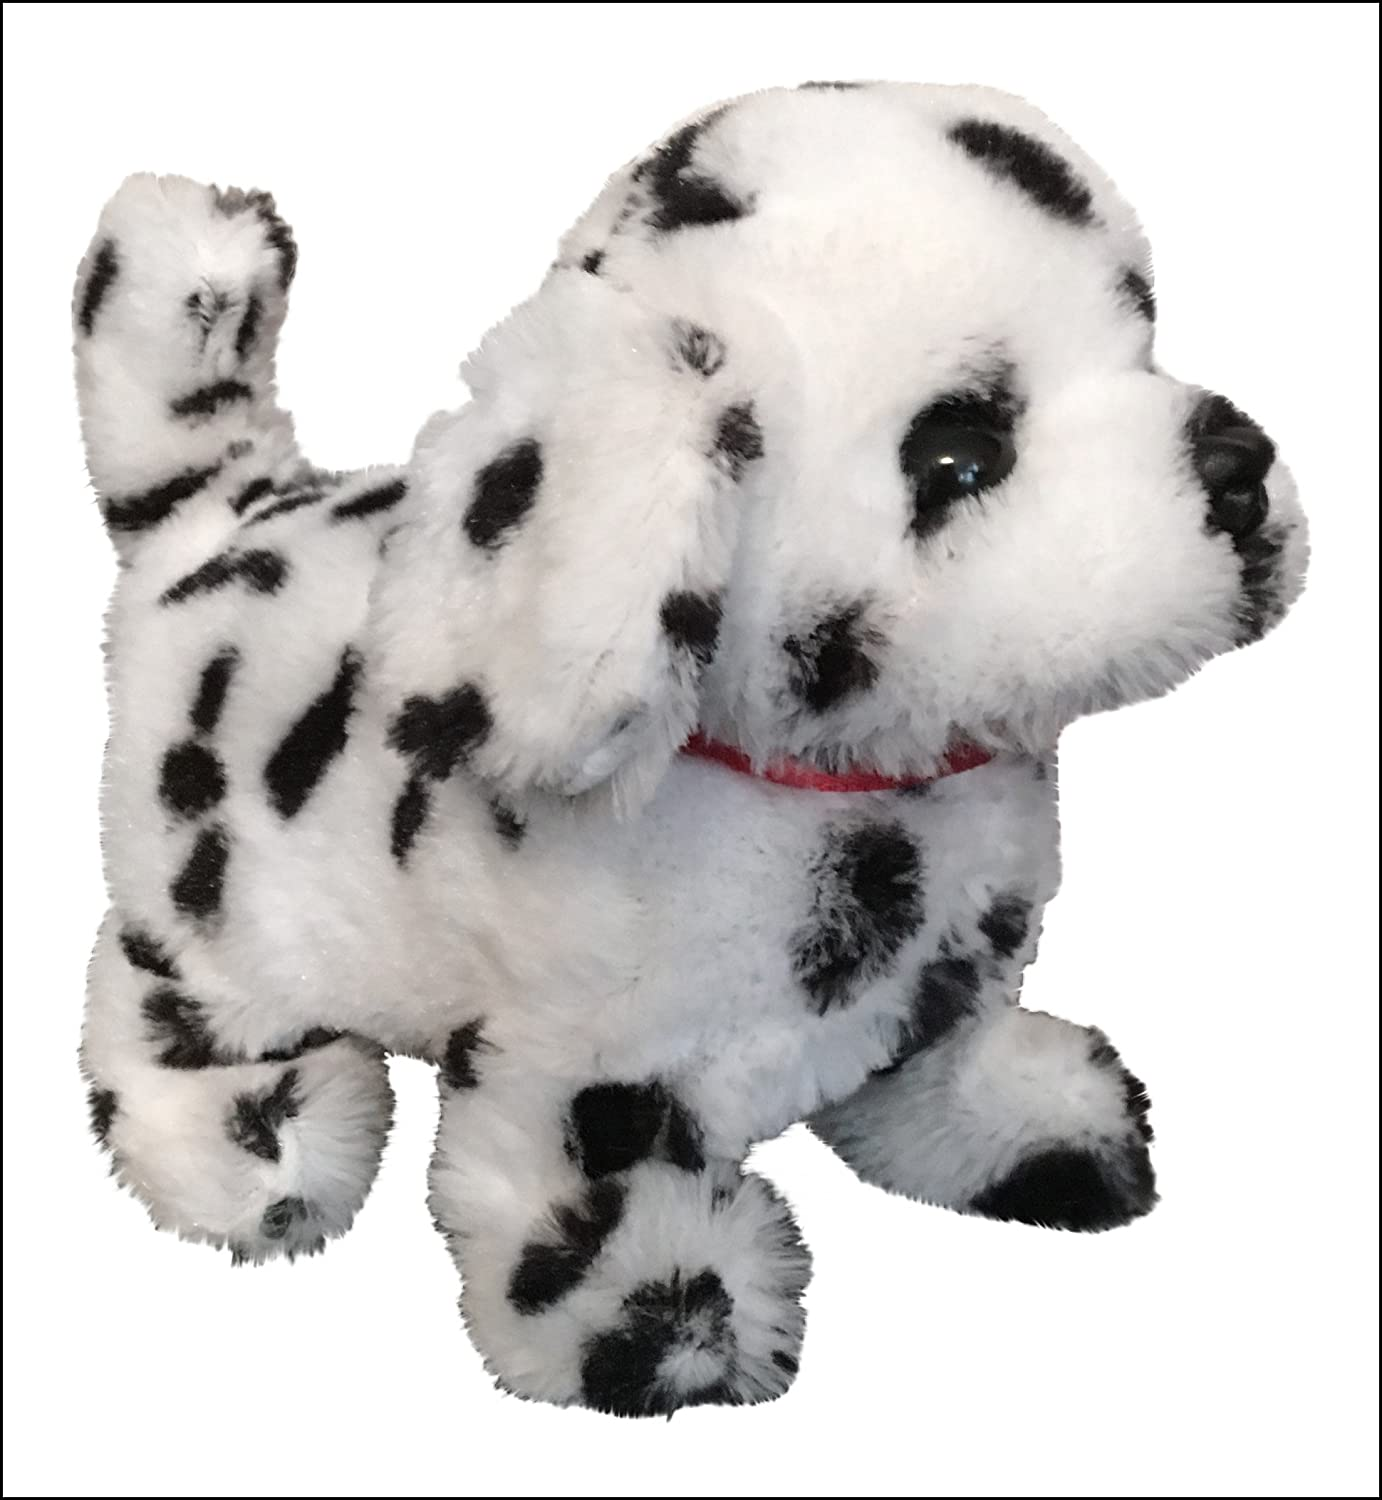 The Walking Barking and Tail Wagging Dalmatian Dog Pet Toy BATTERIES and EasyBuy Crayon Gift INCLUDED